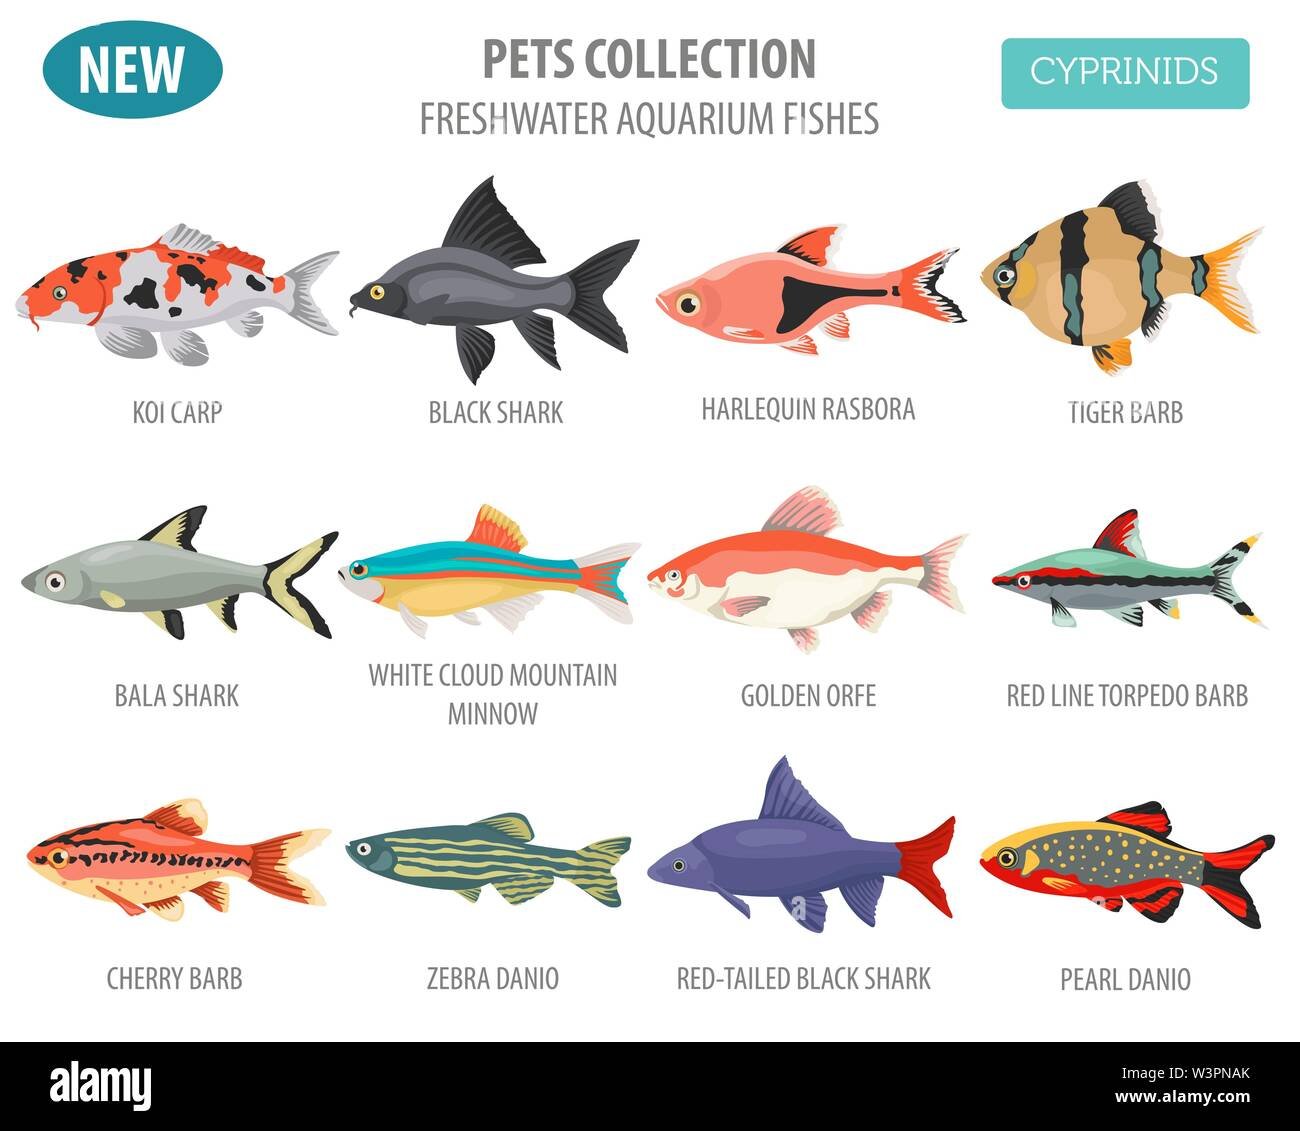 Freshwater aquarium fishes breeds icon set flat style isolated on white. Cyprinids. Create own infographic about pets. Vector illustration Stock Vector